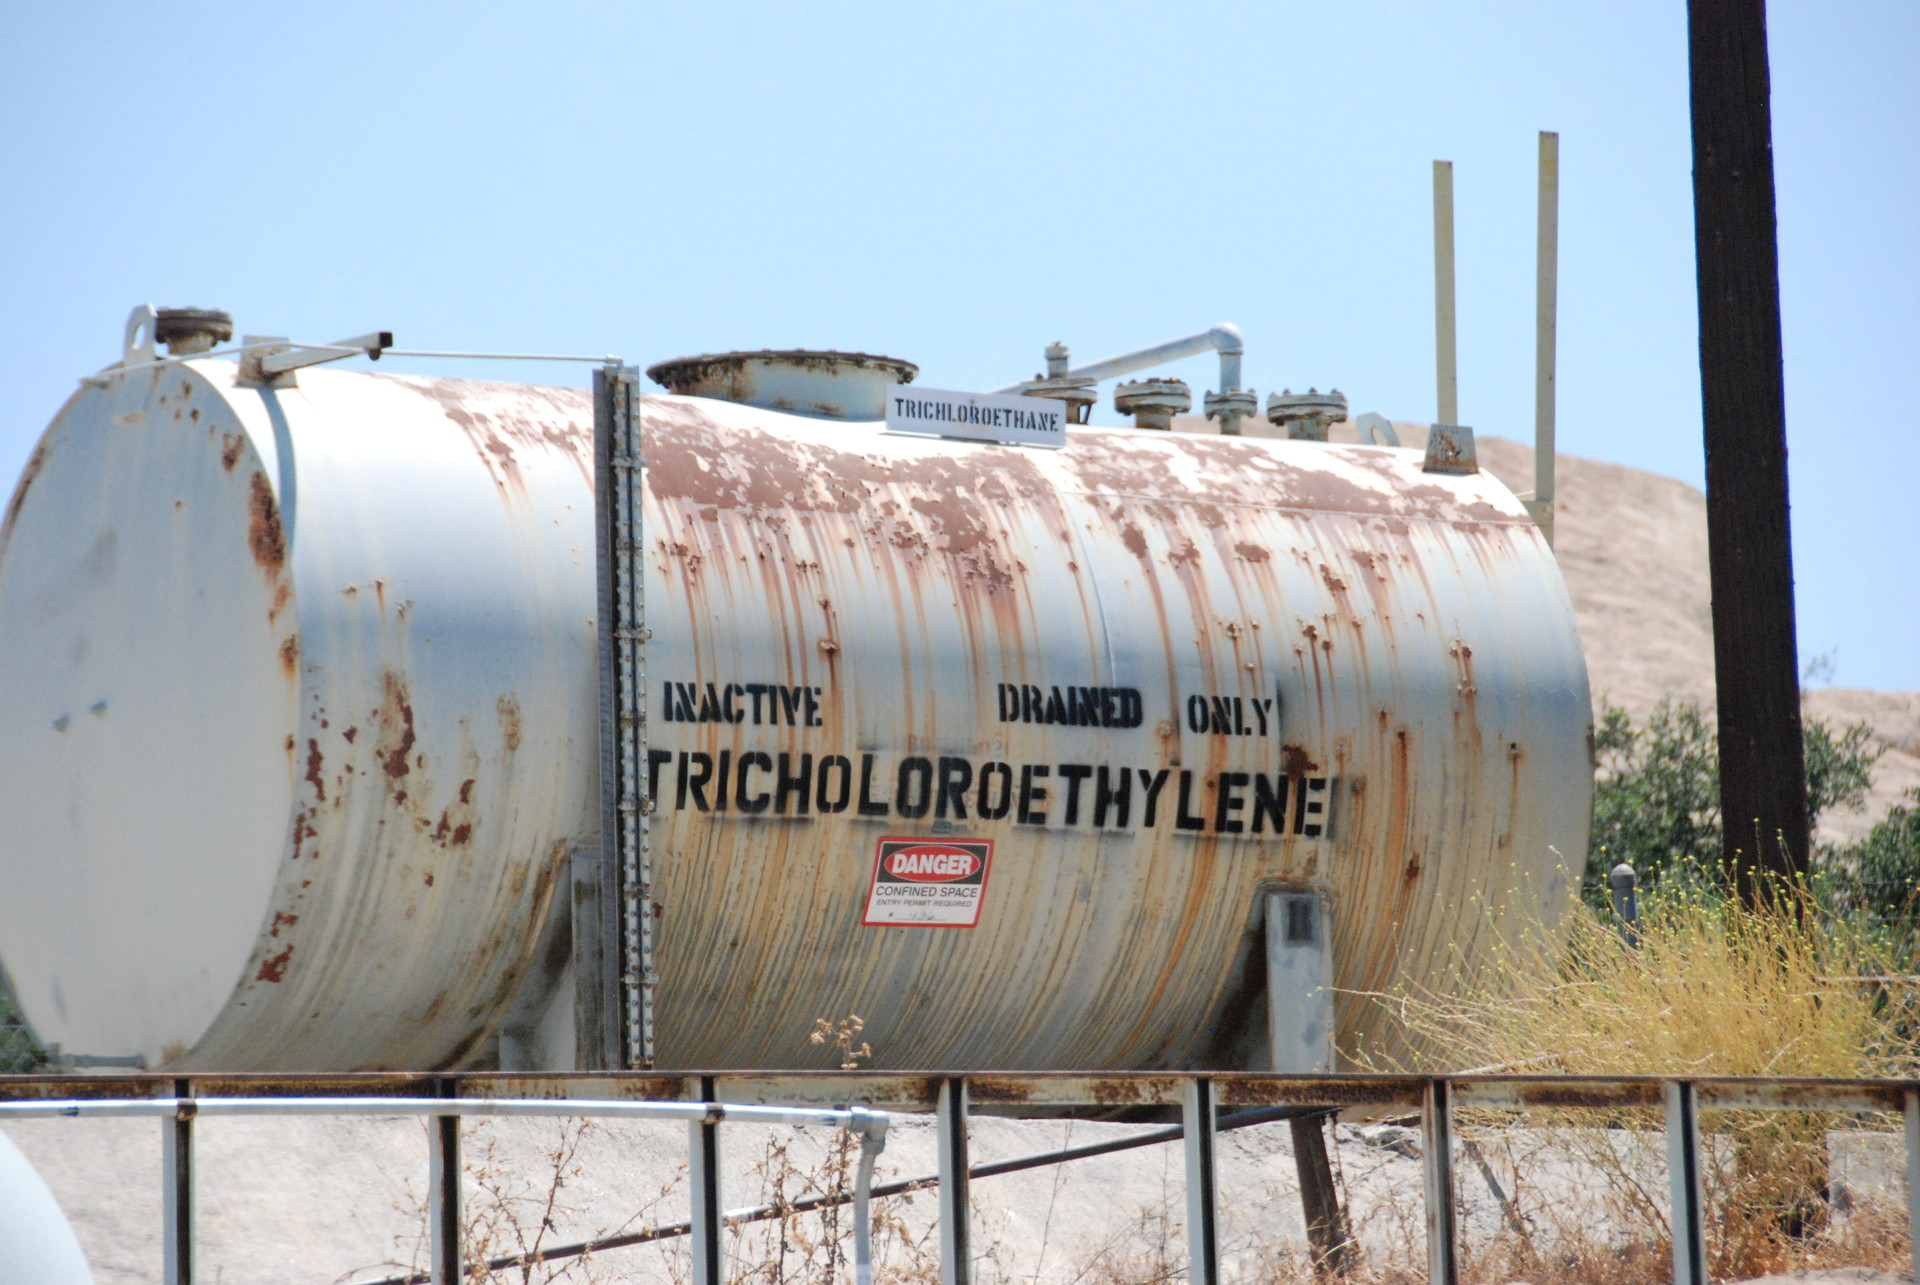 NASA used trichloroethylene, a carcinogen, as a degreaser on its rocket test stands, then poured it into unlined storage ponds. An estimated half-million gallons of trichloroethylene have contaminated the ground beneath Santa Susana.